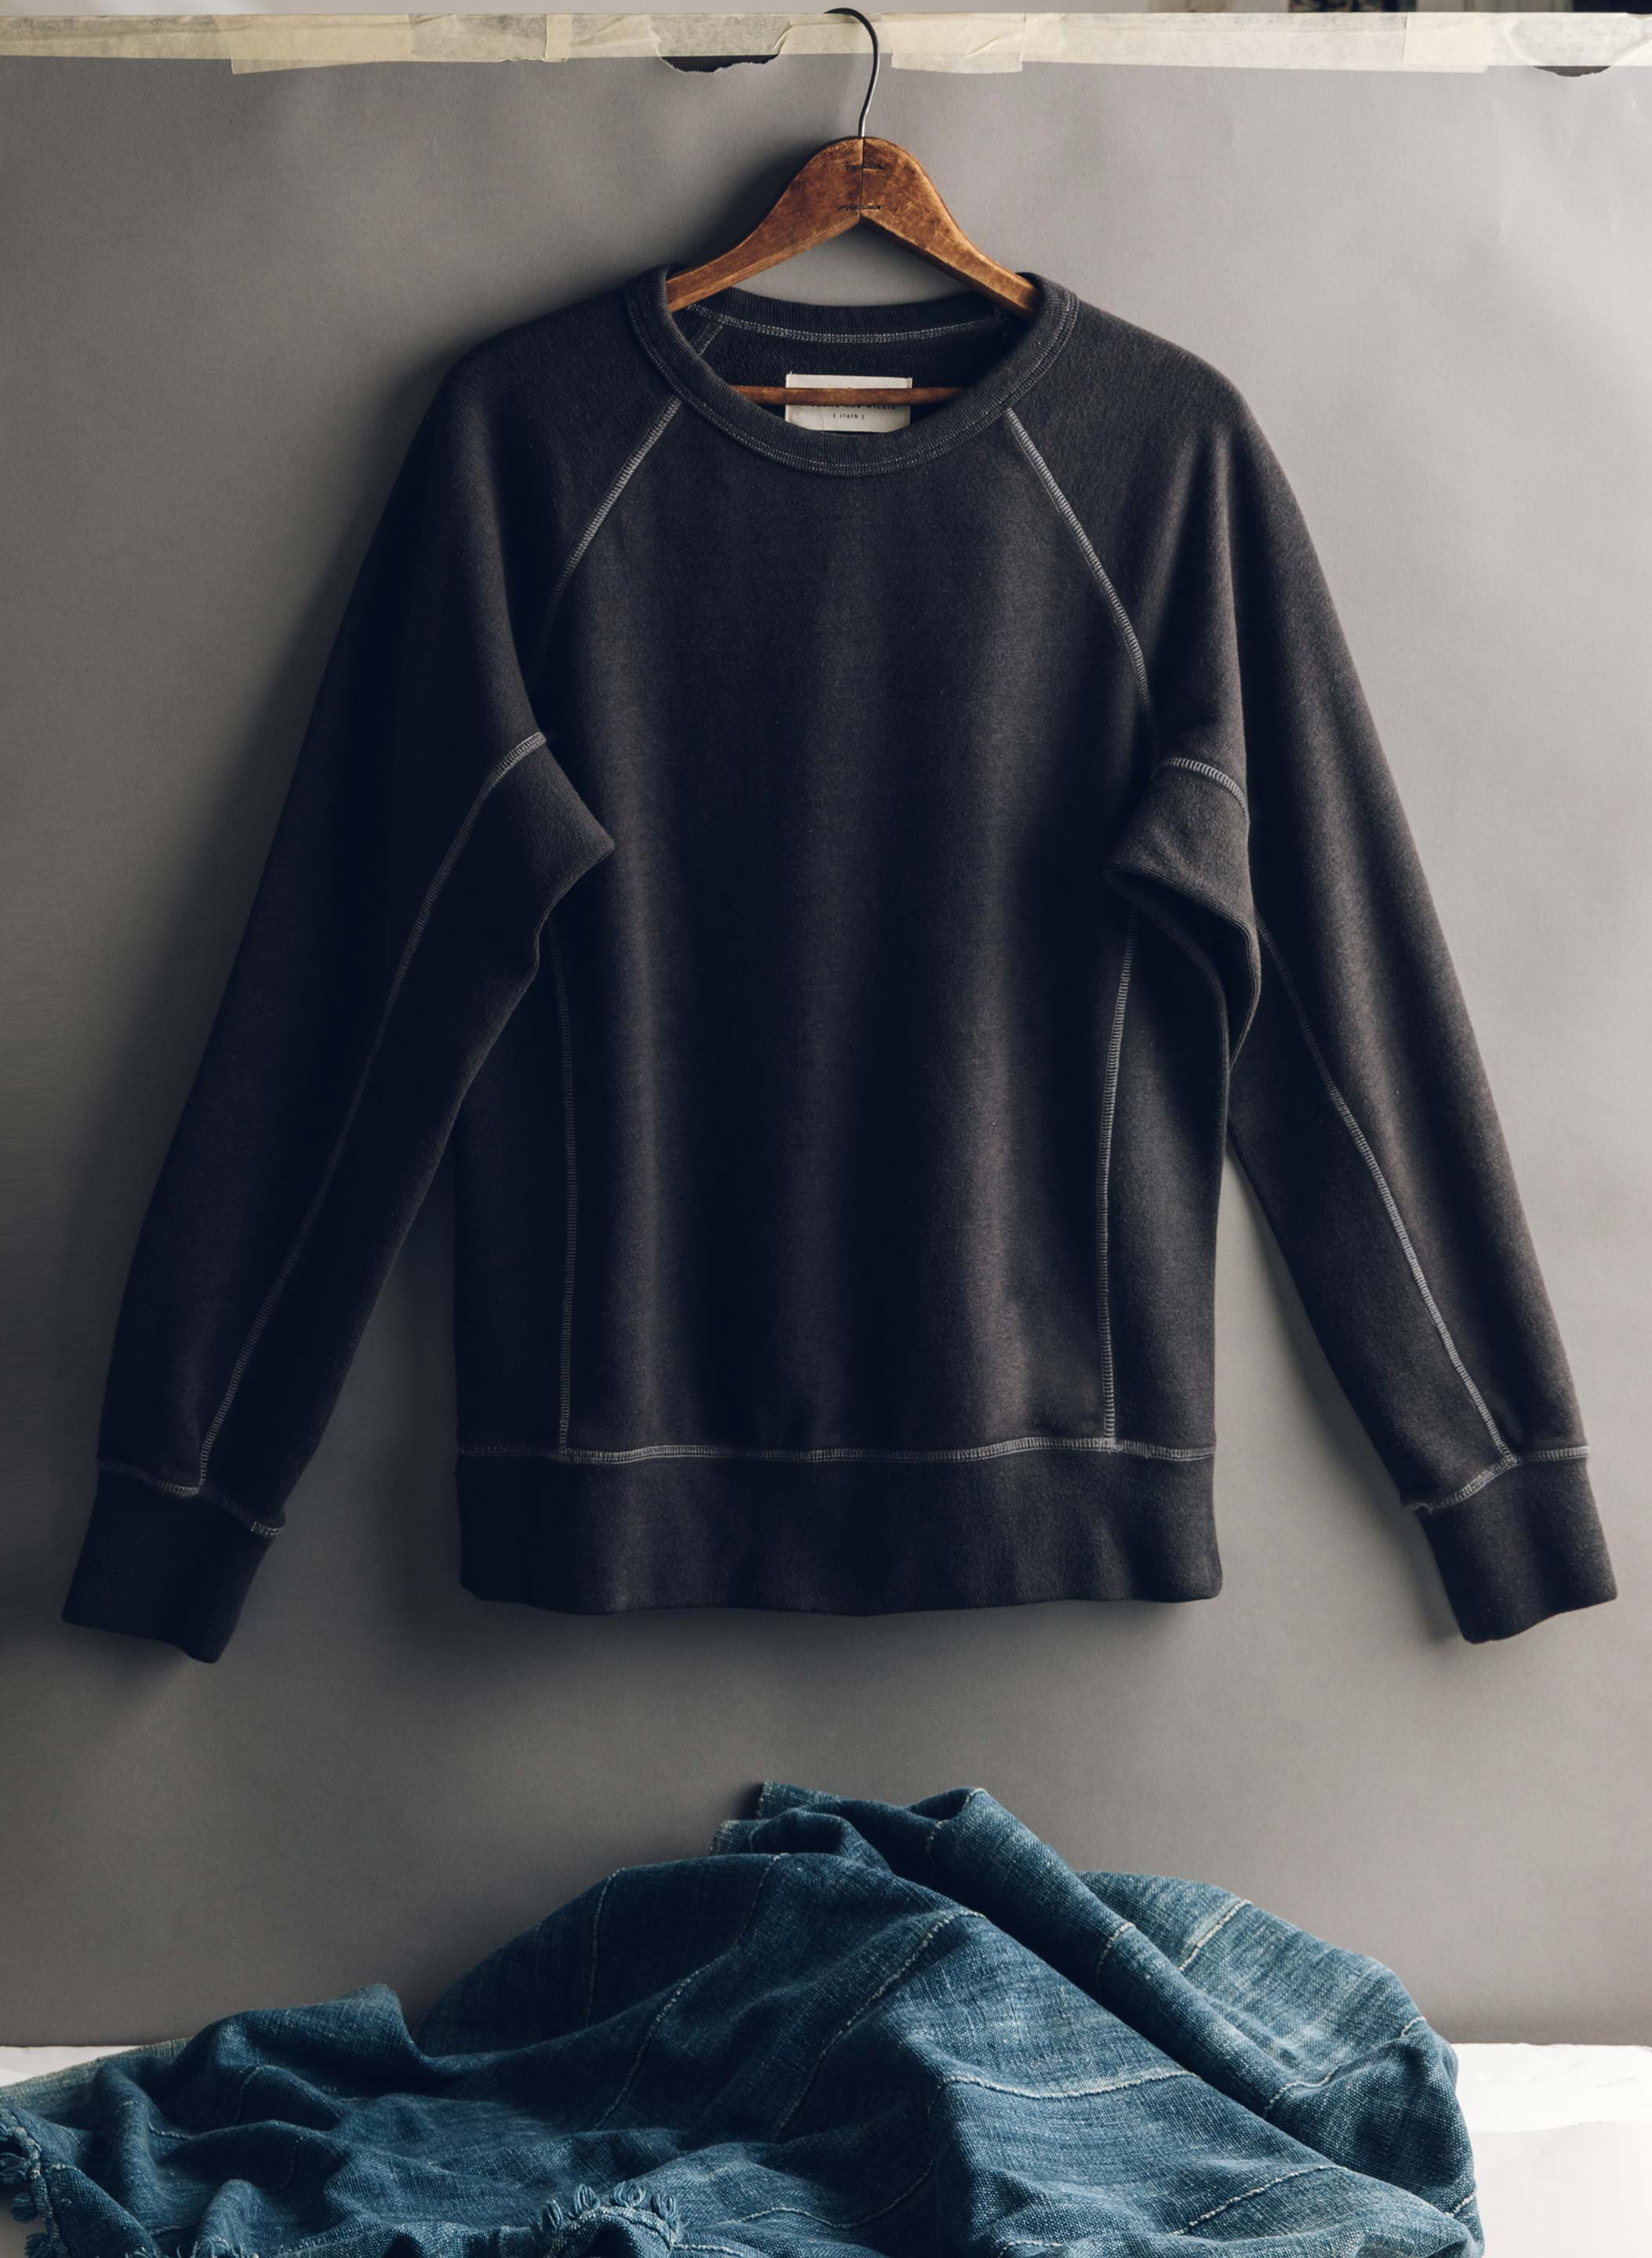 imogene + willie - the dryden sweatshirt in black